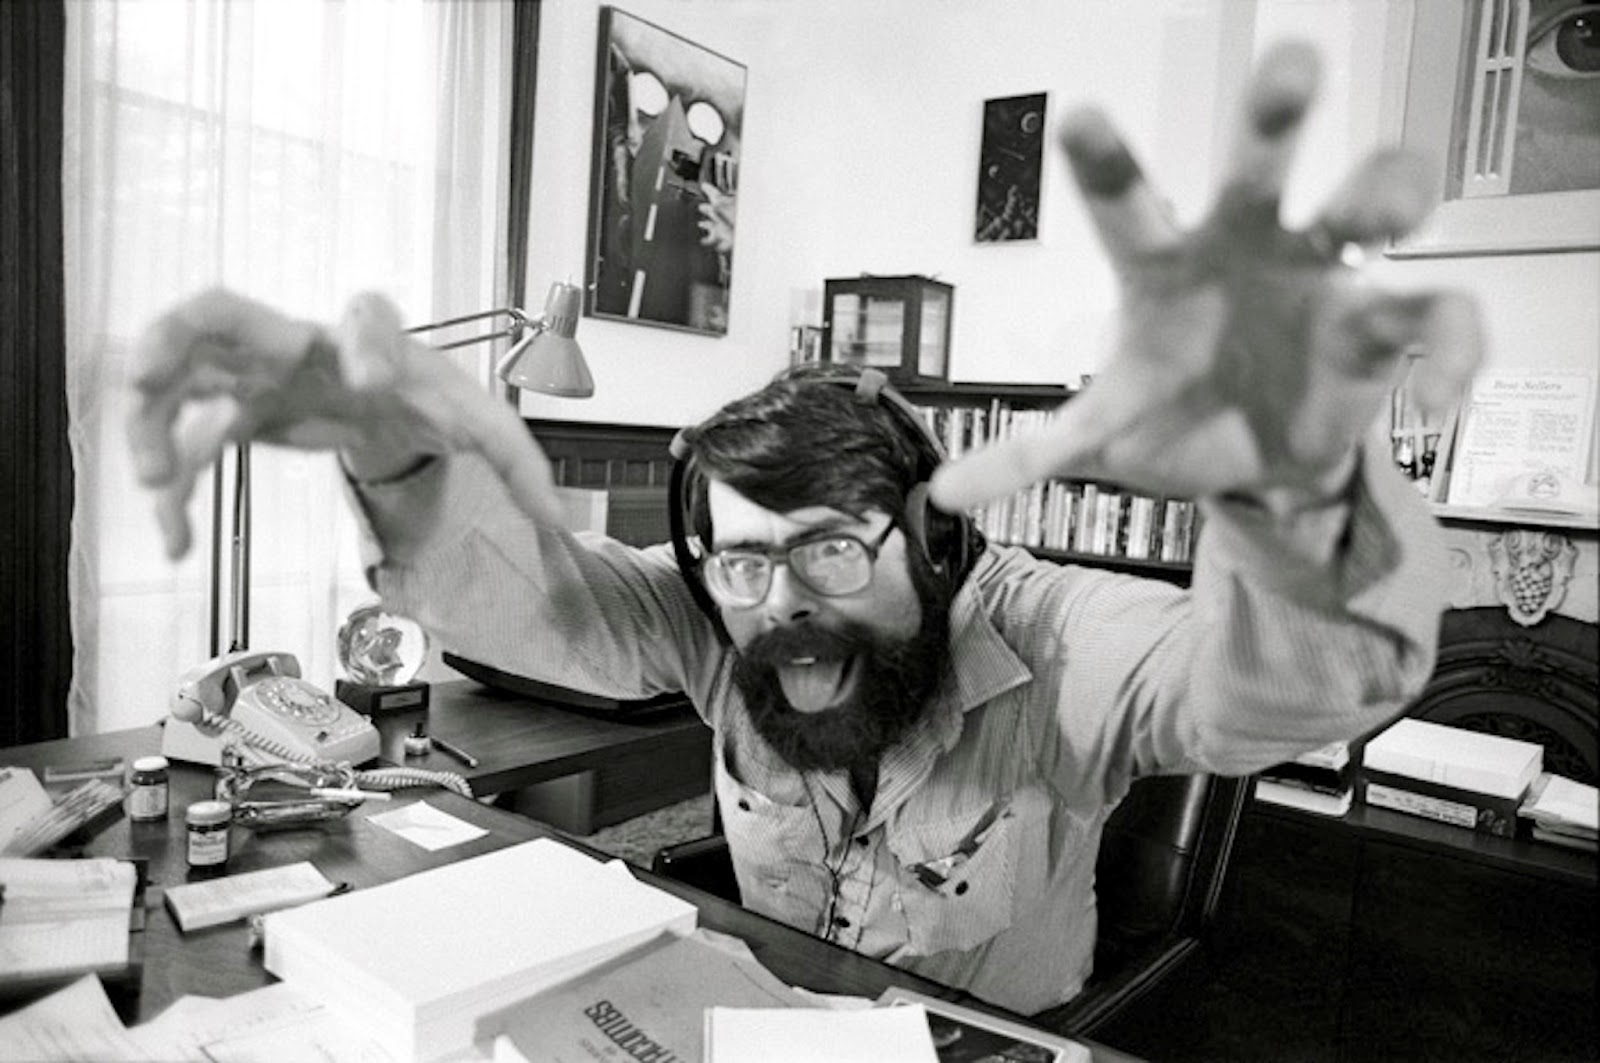 Ten things I learned about writing from Stephen King